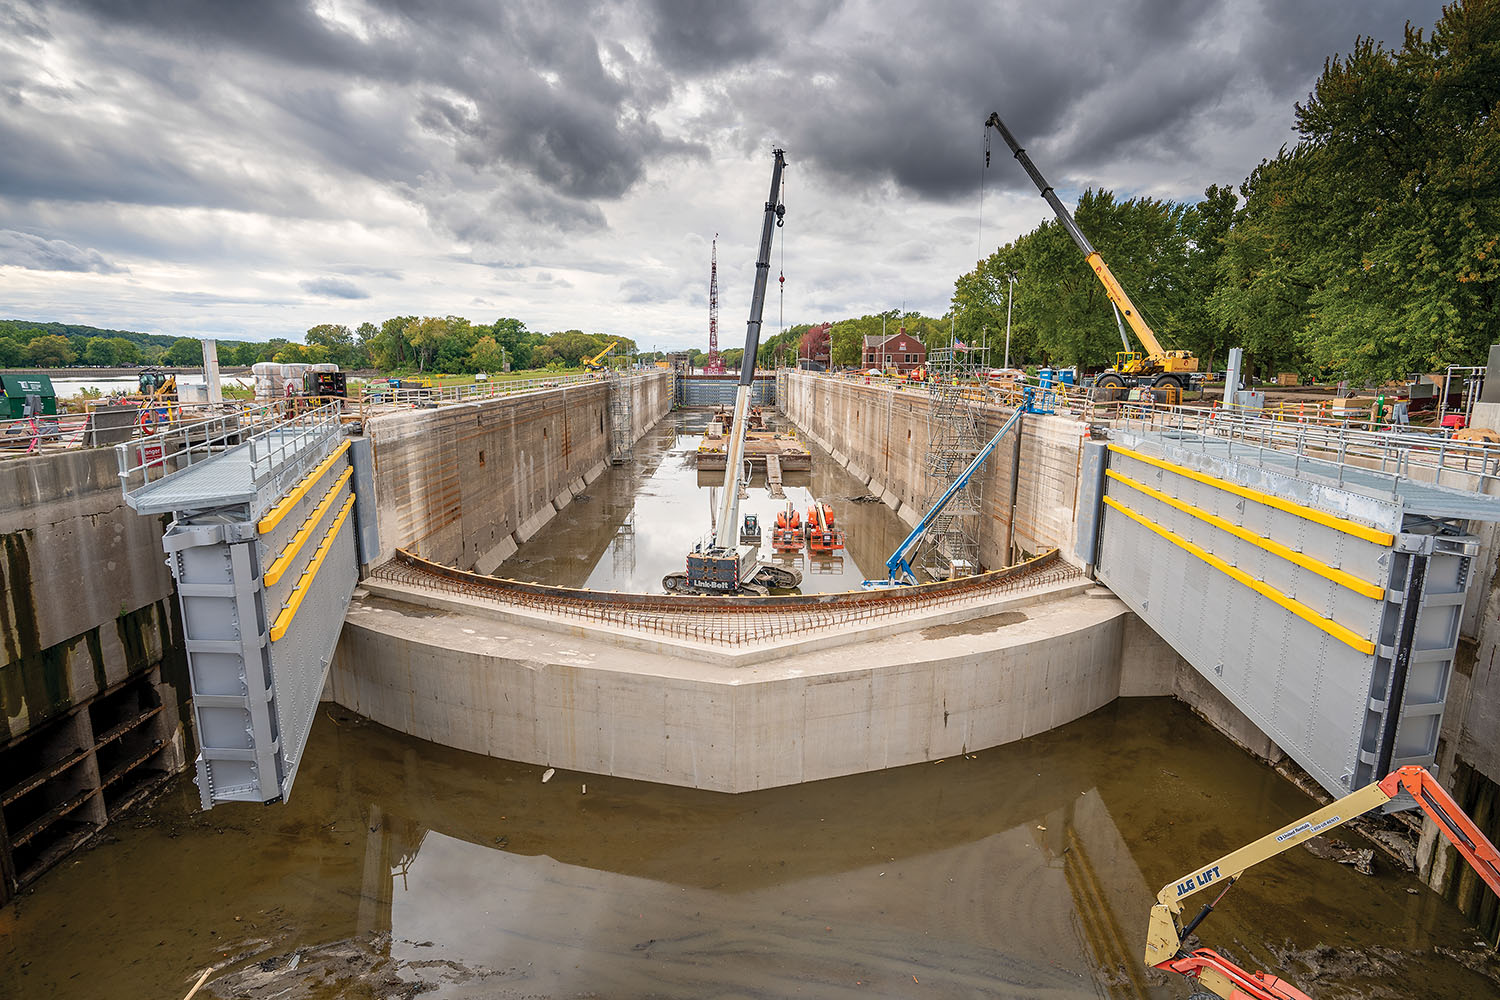 All four miter gates were replaced at Starved Rock Lock on the Illinois Waterway. Starved Lock was only one of several locks that received major rehab jobs simultaneously in 2020; the long-planned river closure for the repairs lasted from July 1 until October 29. (Photo courtesy of Alberici Constructors)